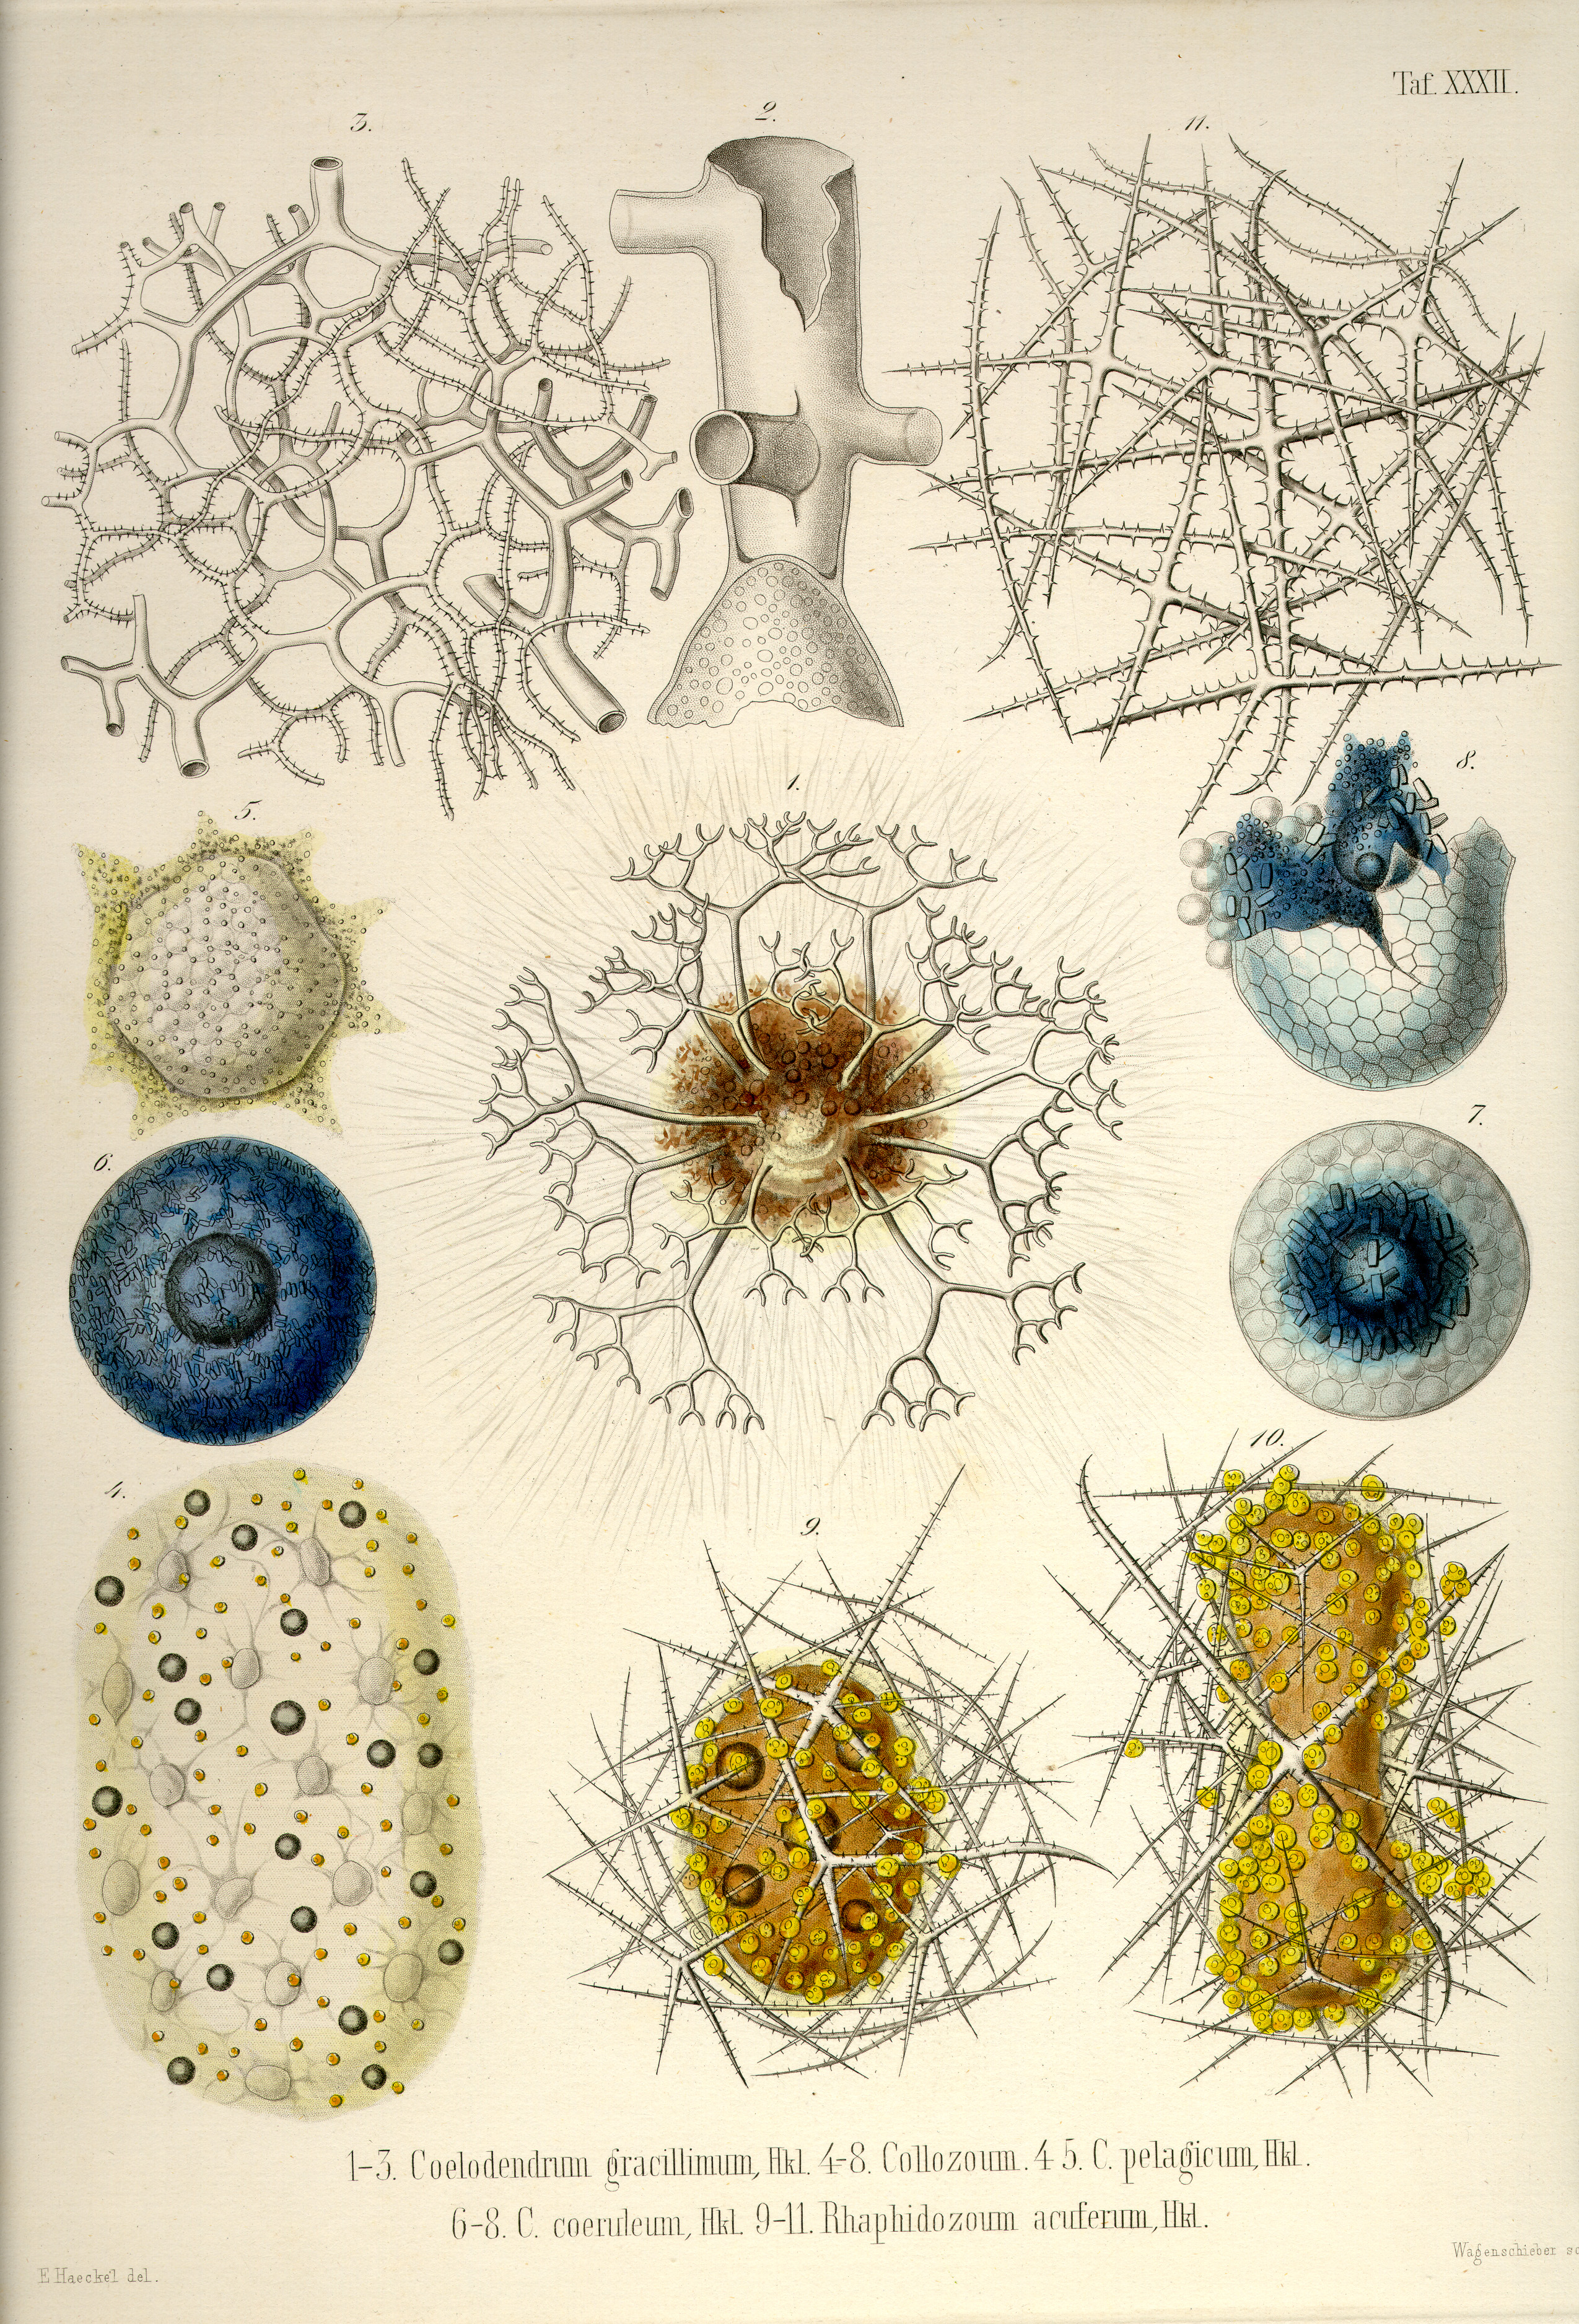 Ernst Haeckel, Plate 32  |  Image Courtesy of Kurt Stüber via his website http://caliban.mpiz-koeln.mpg.de/haeckel/radiolarien/